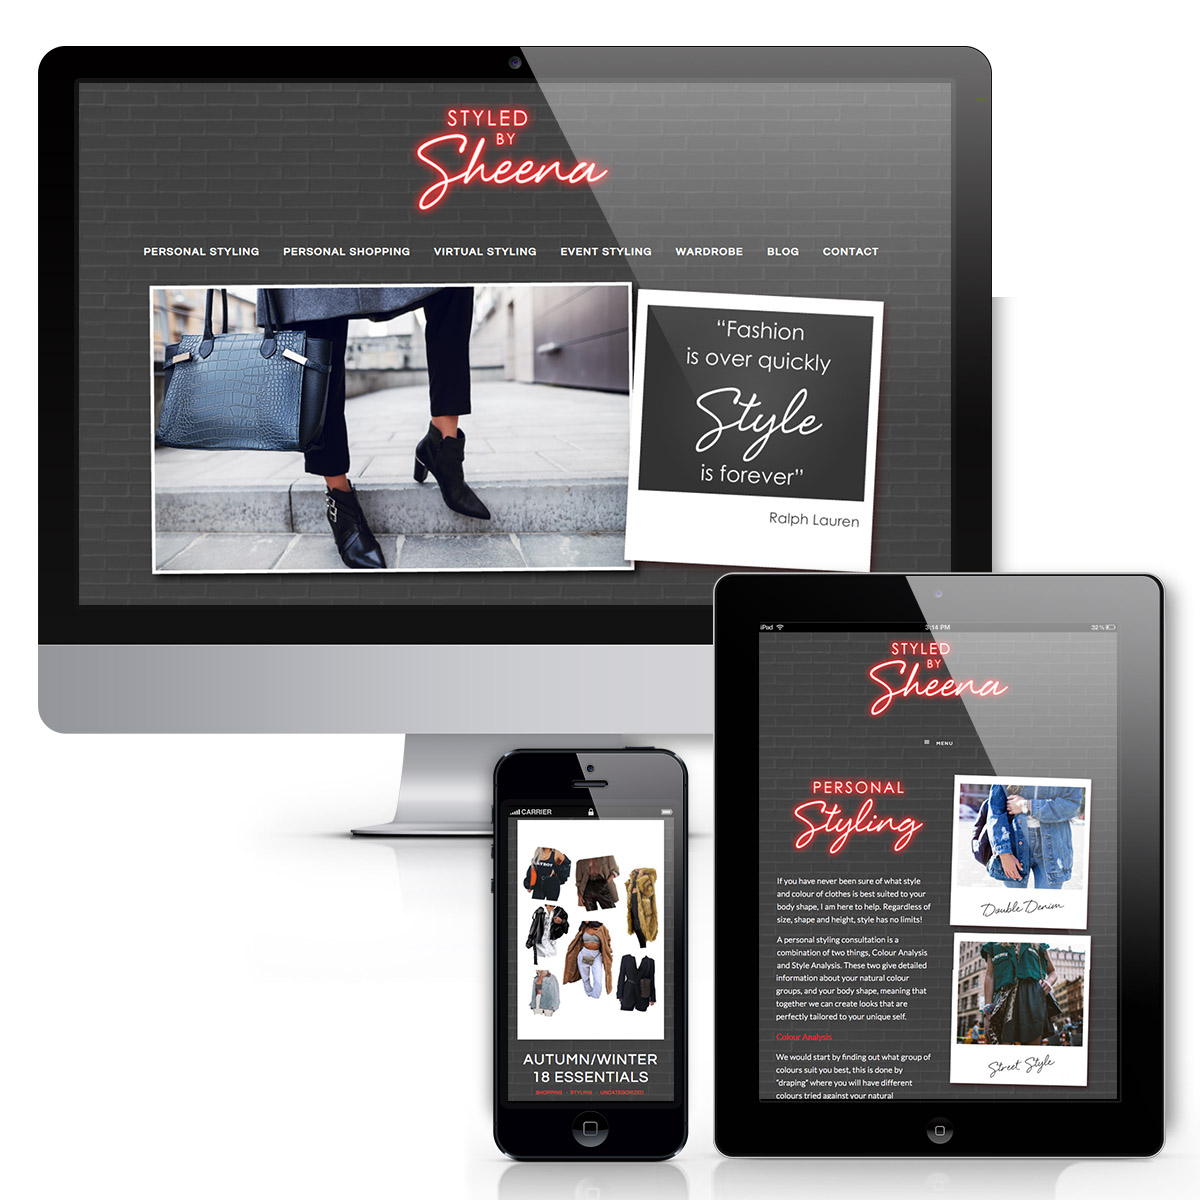 Styled by Sheena Website design with red neon logo